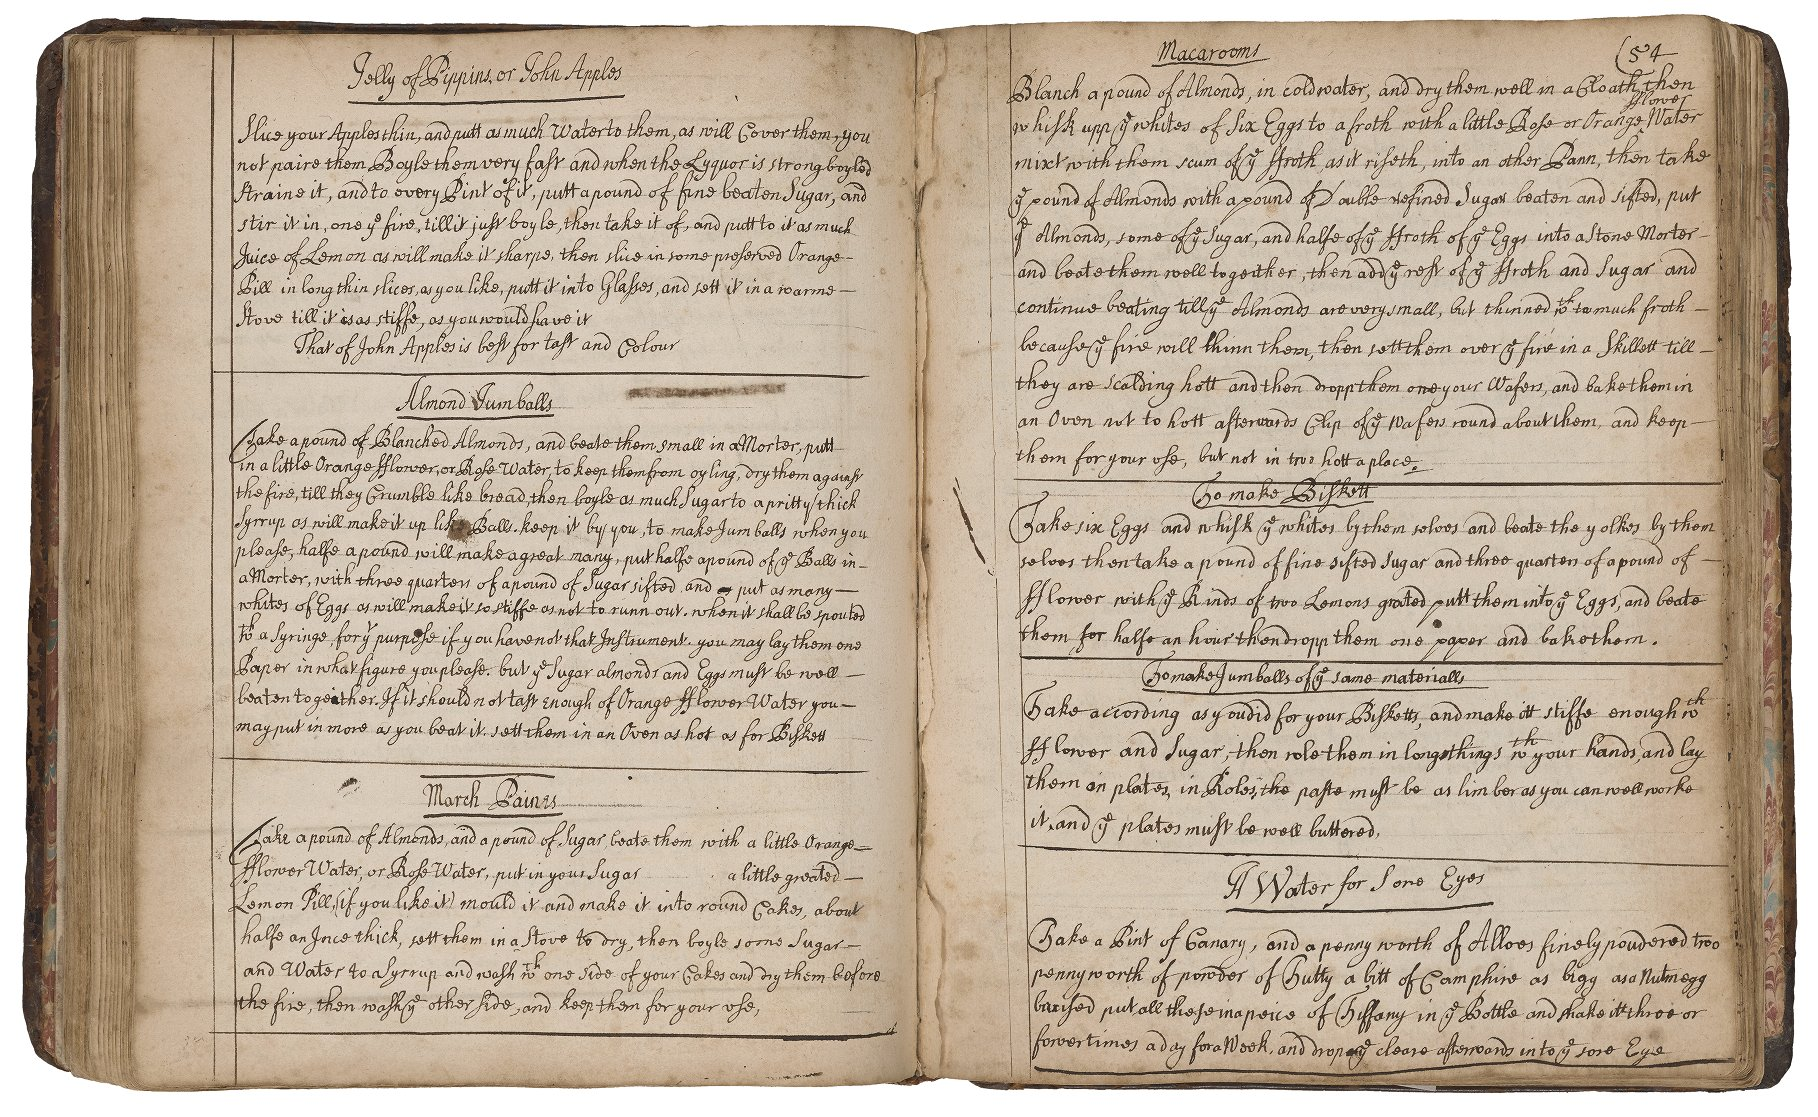 Cookery and Medicinal Recipes (c. 1675-c.1750) V.a.429, Folger Shakespeare Library. Image courtesy of the Folger Shakespeare Library's LUNA: Digital Image Collection.